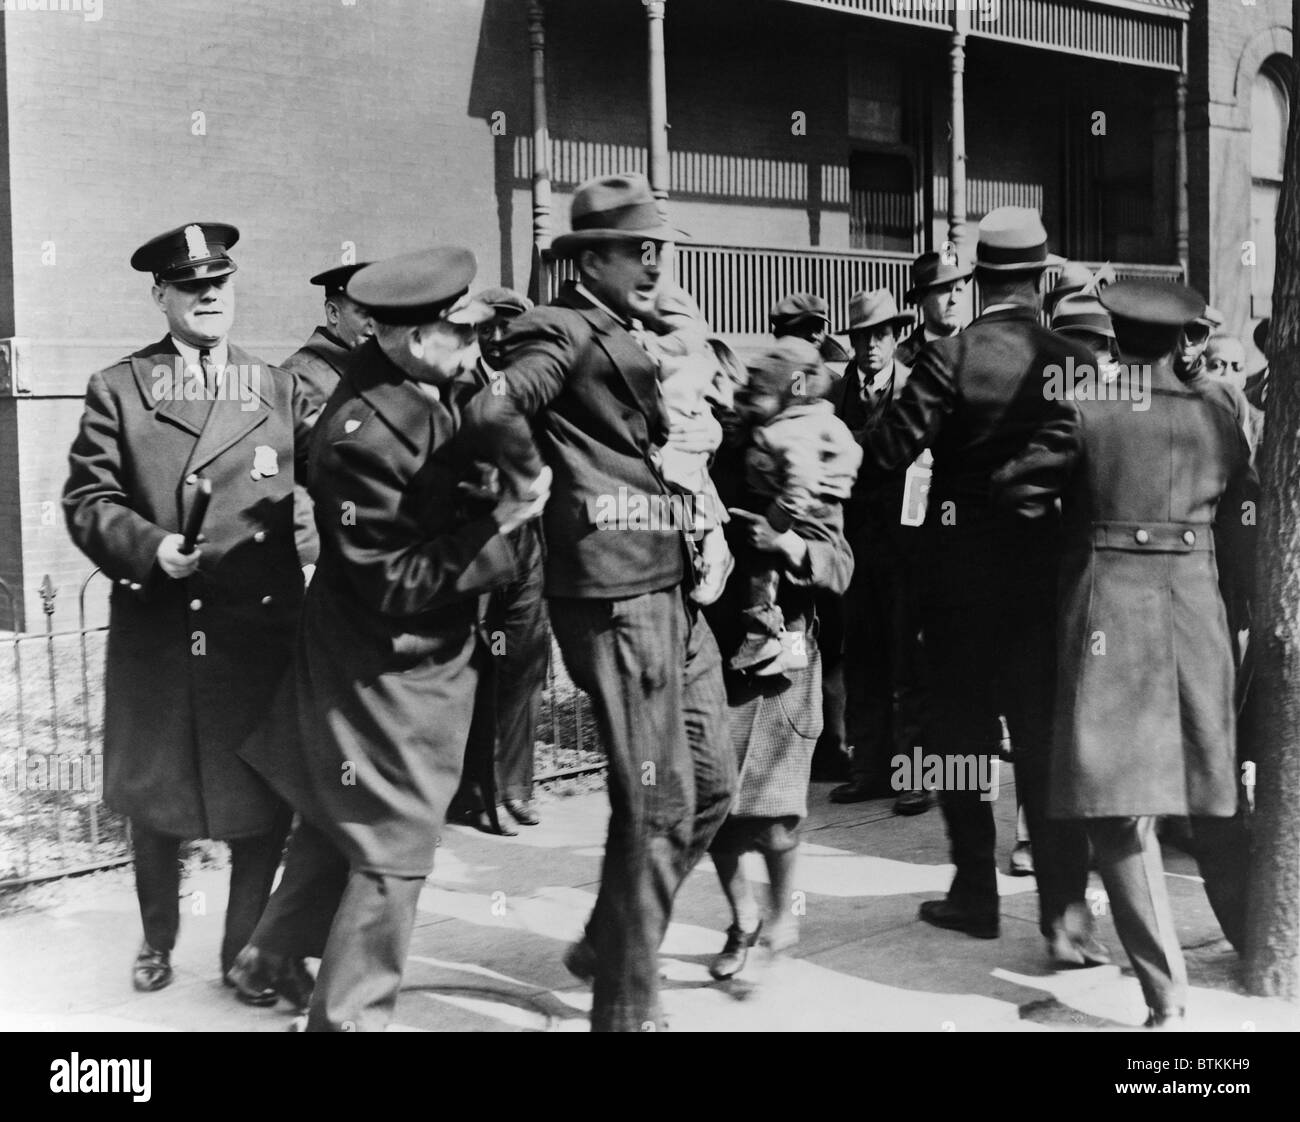 Washington D.C. Police arrest a man carrying child as others look on during a Depression era protest of unemployed. - Stock Image